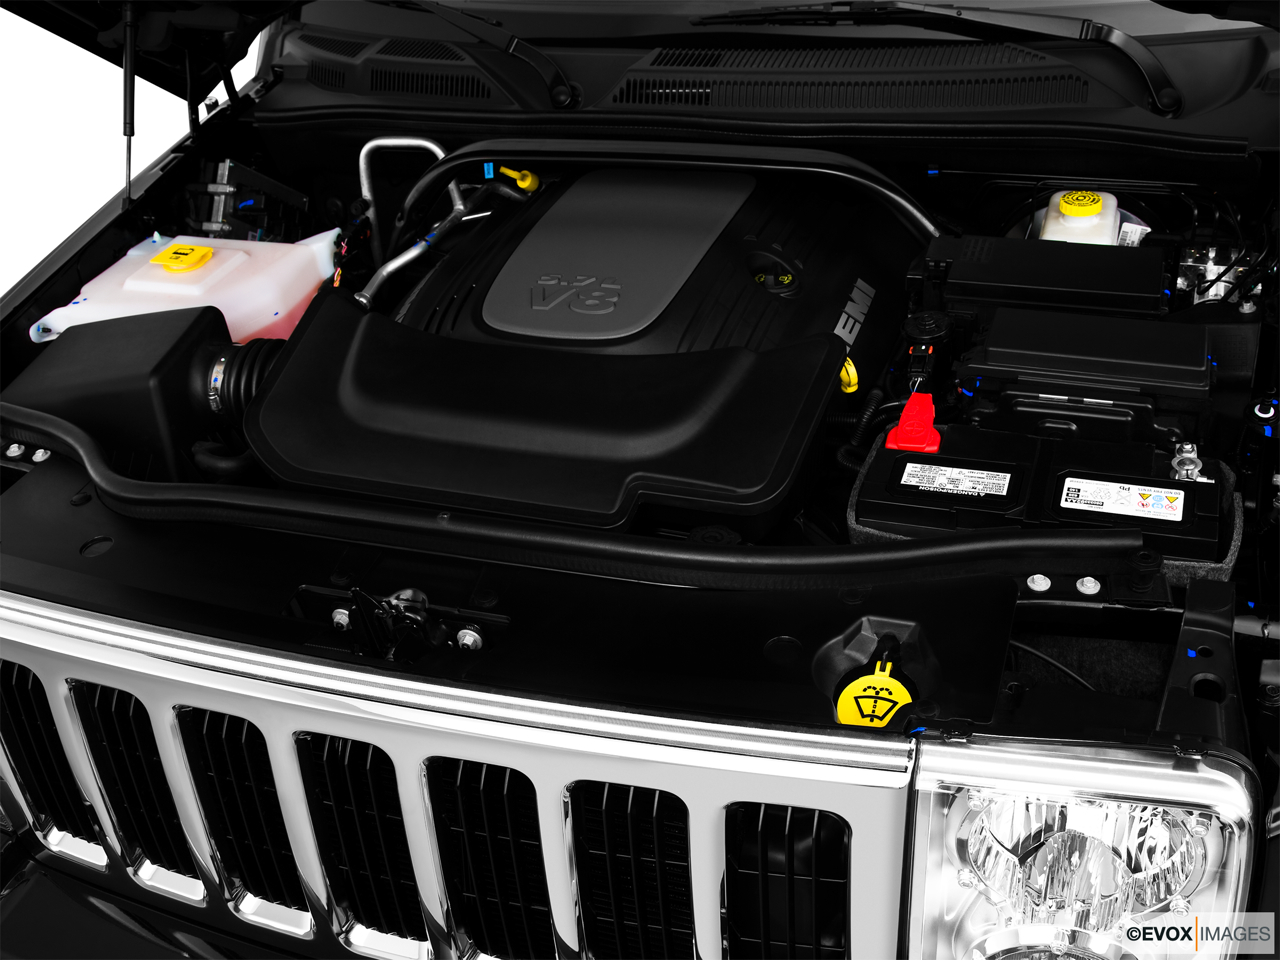 2010 Jeep Commander Limited Engine.